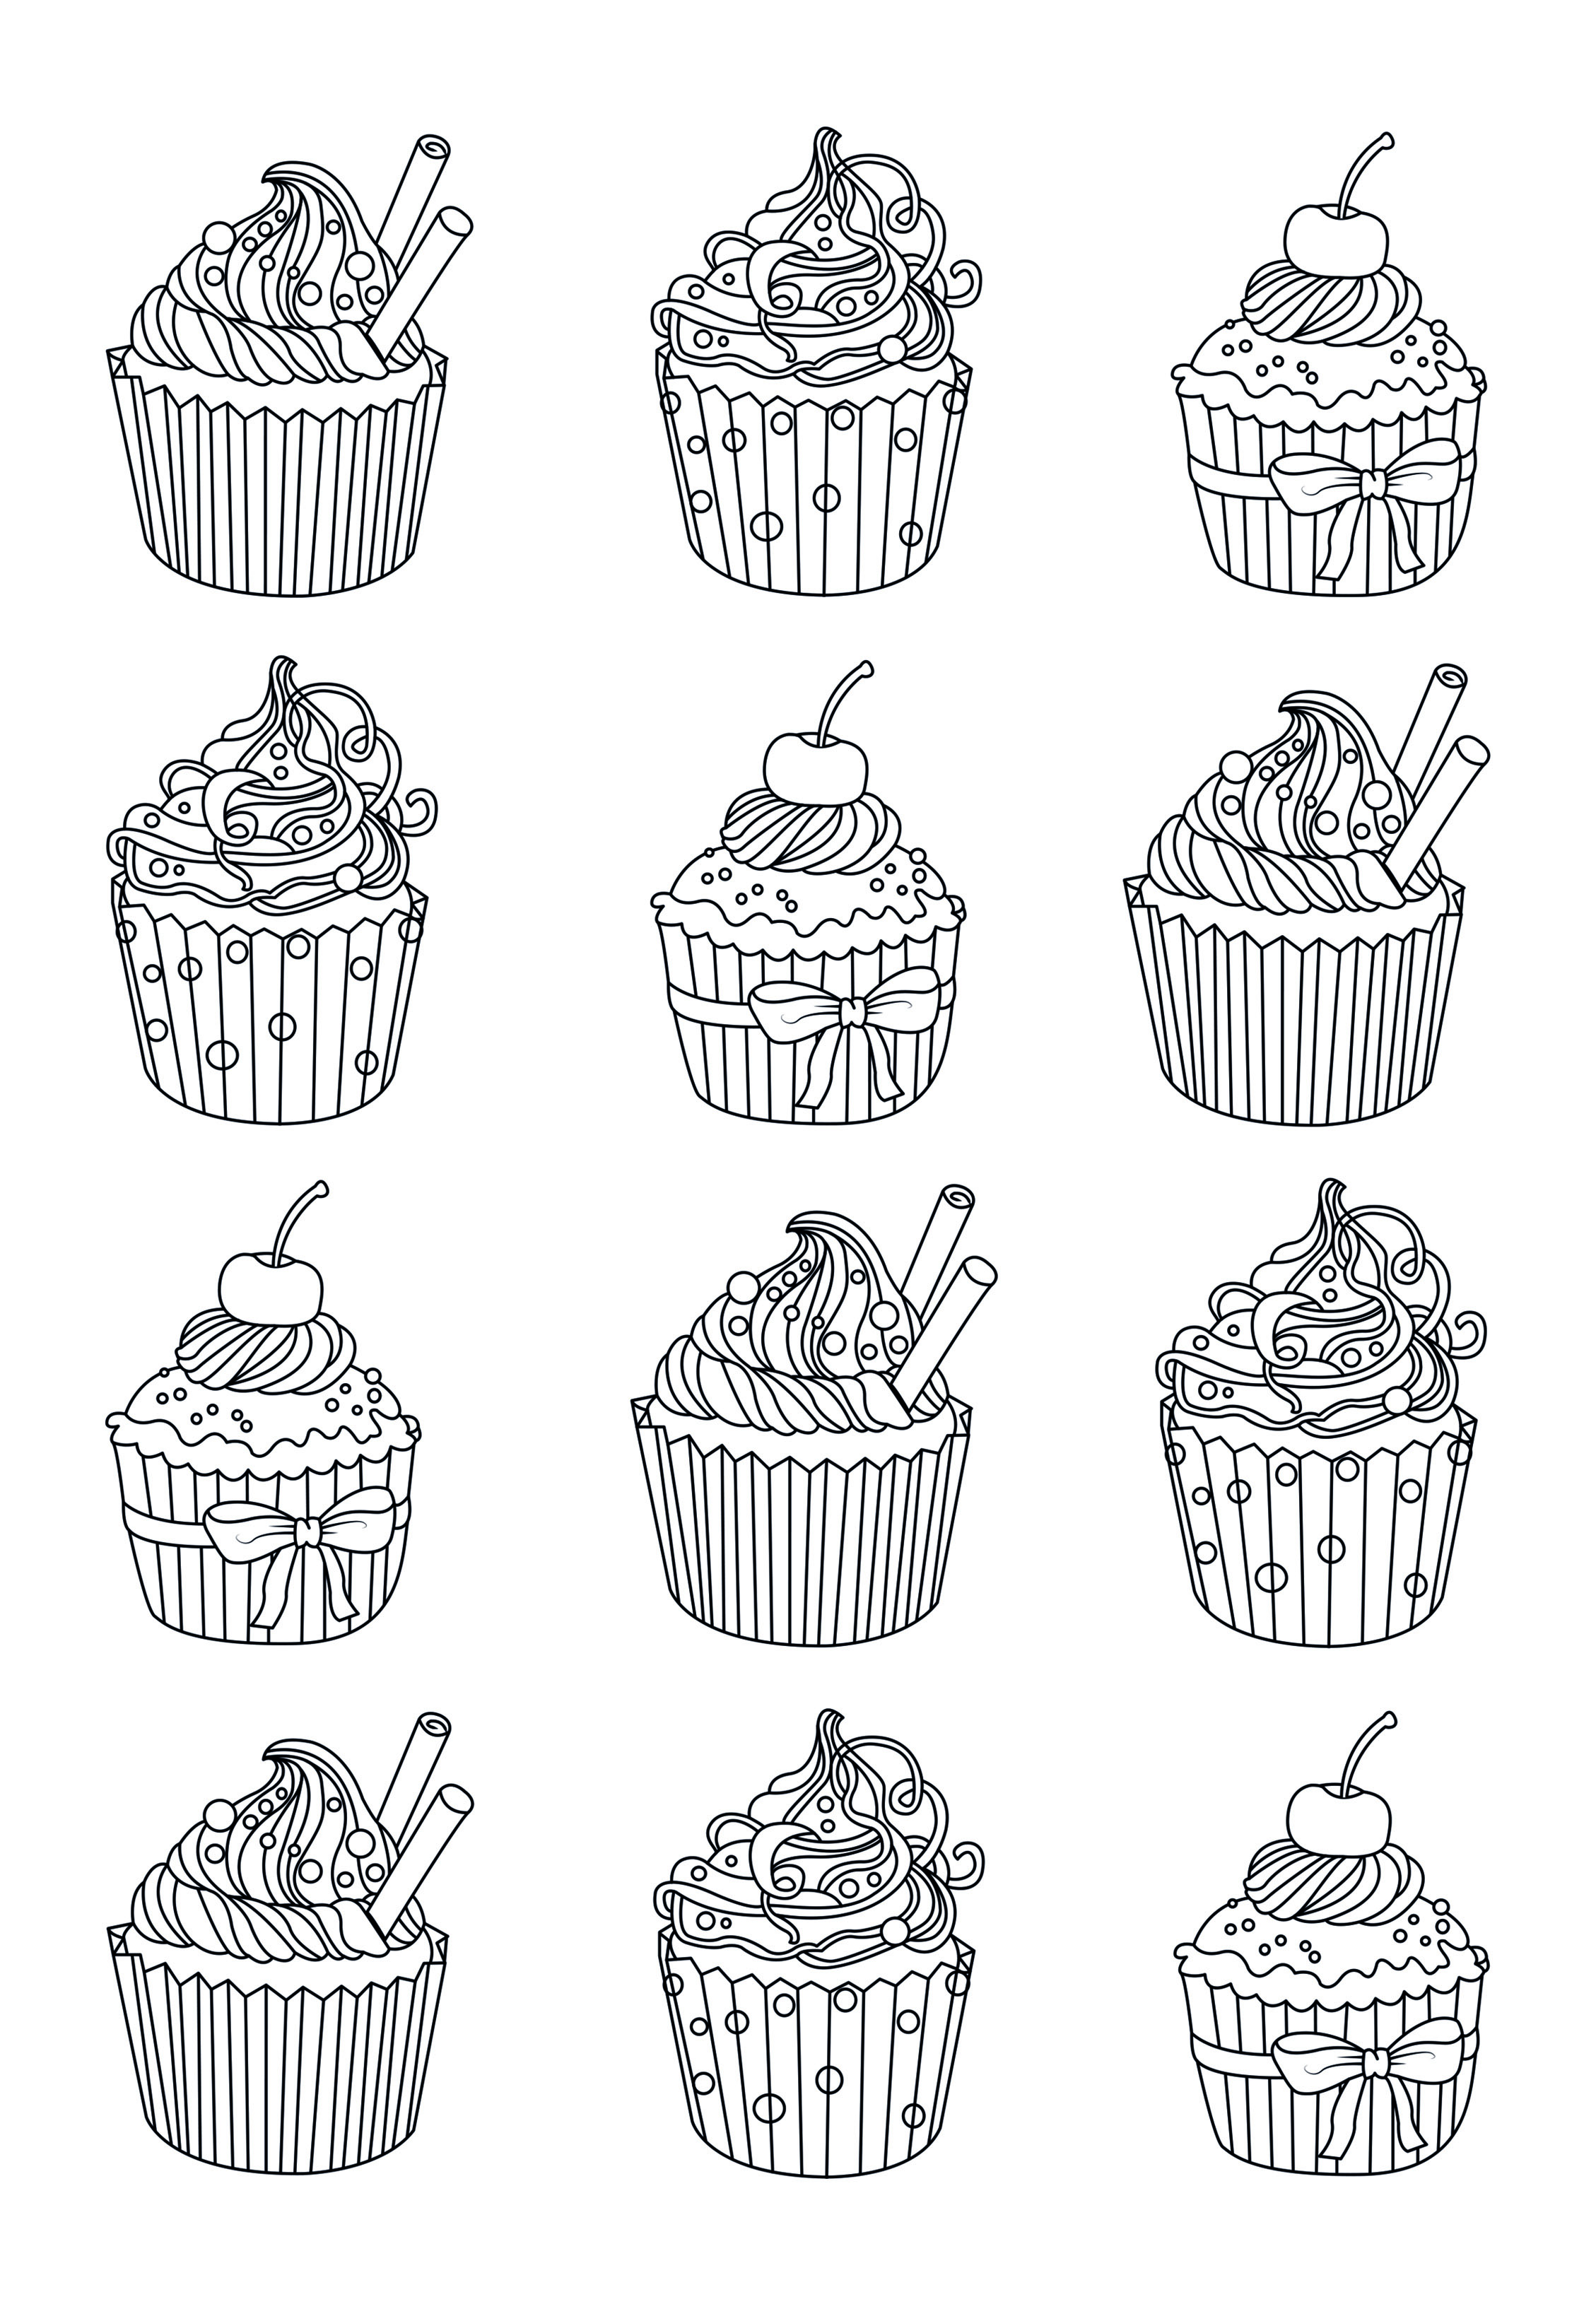 yum yum many coloring page easy to colors and eat